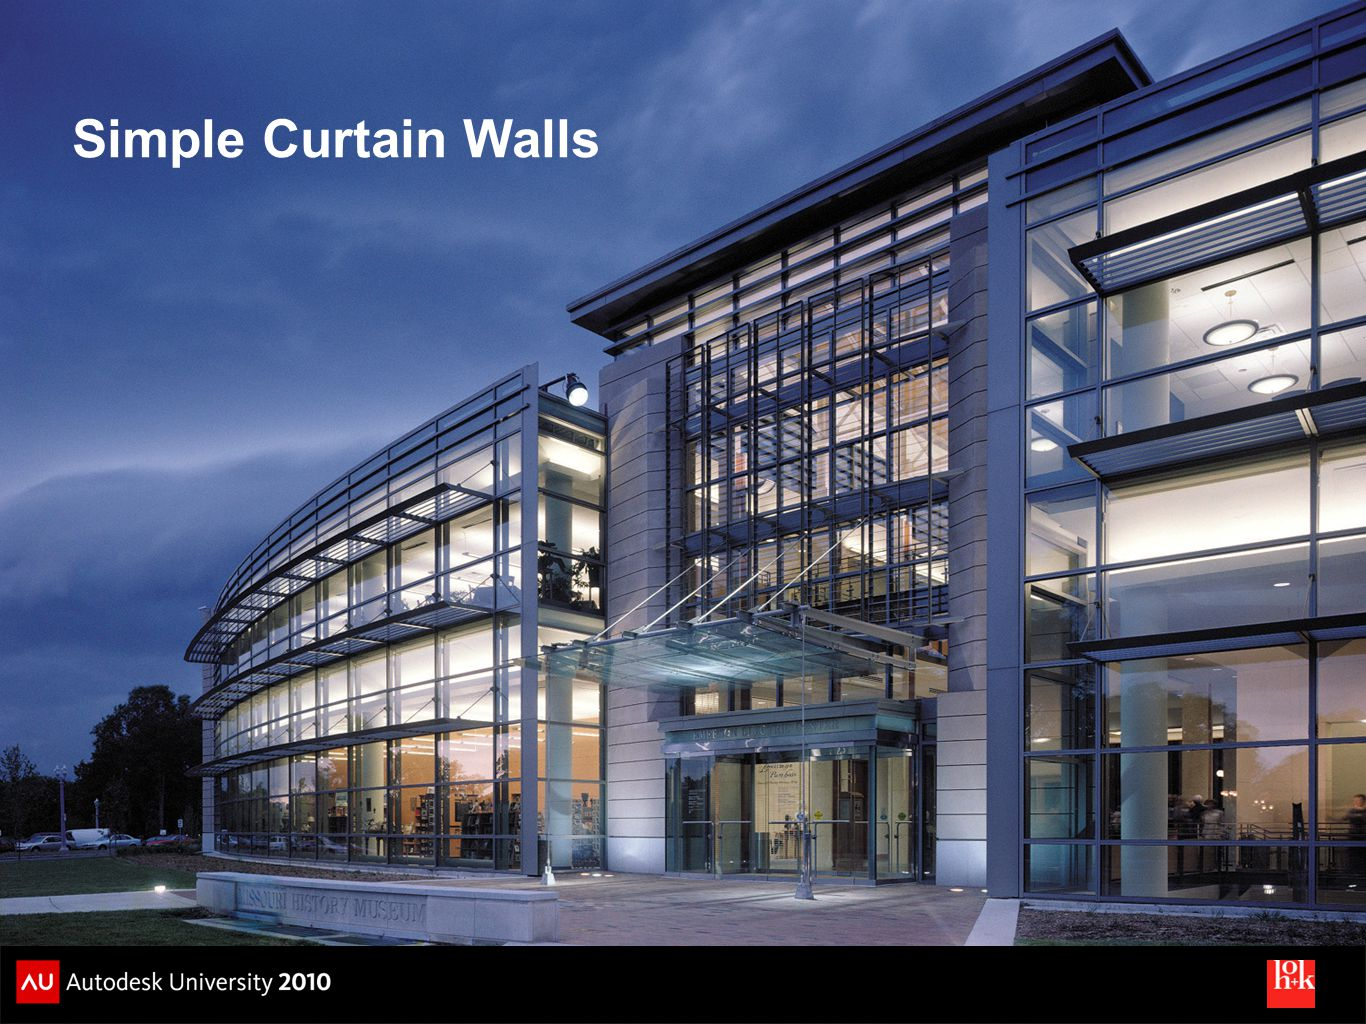 Simple Curtain Walls